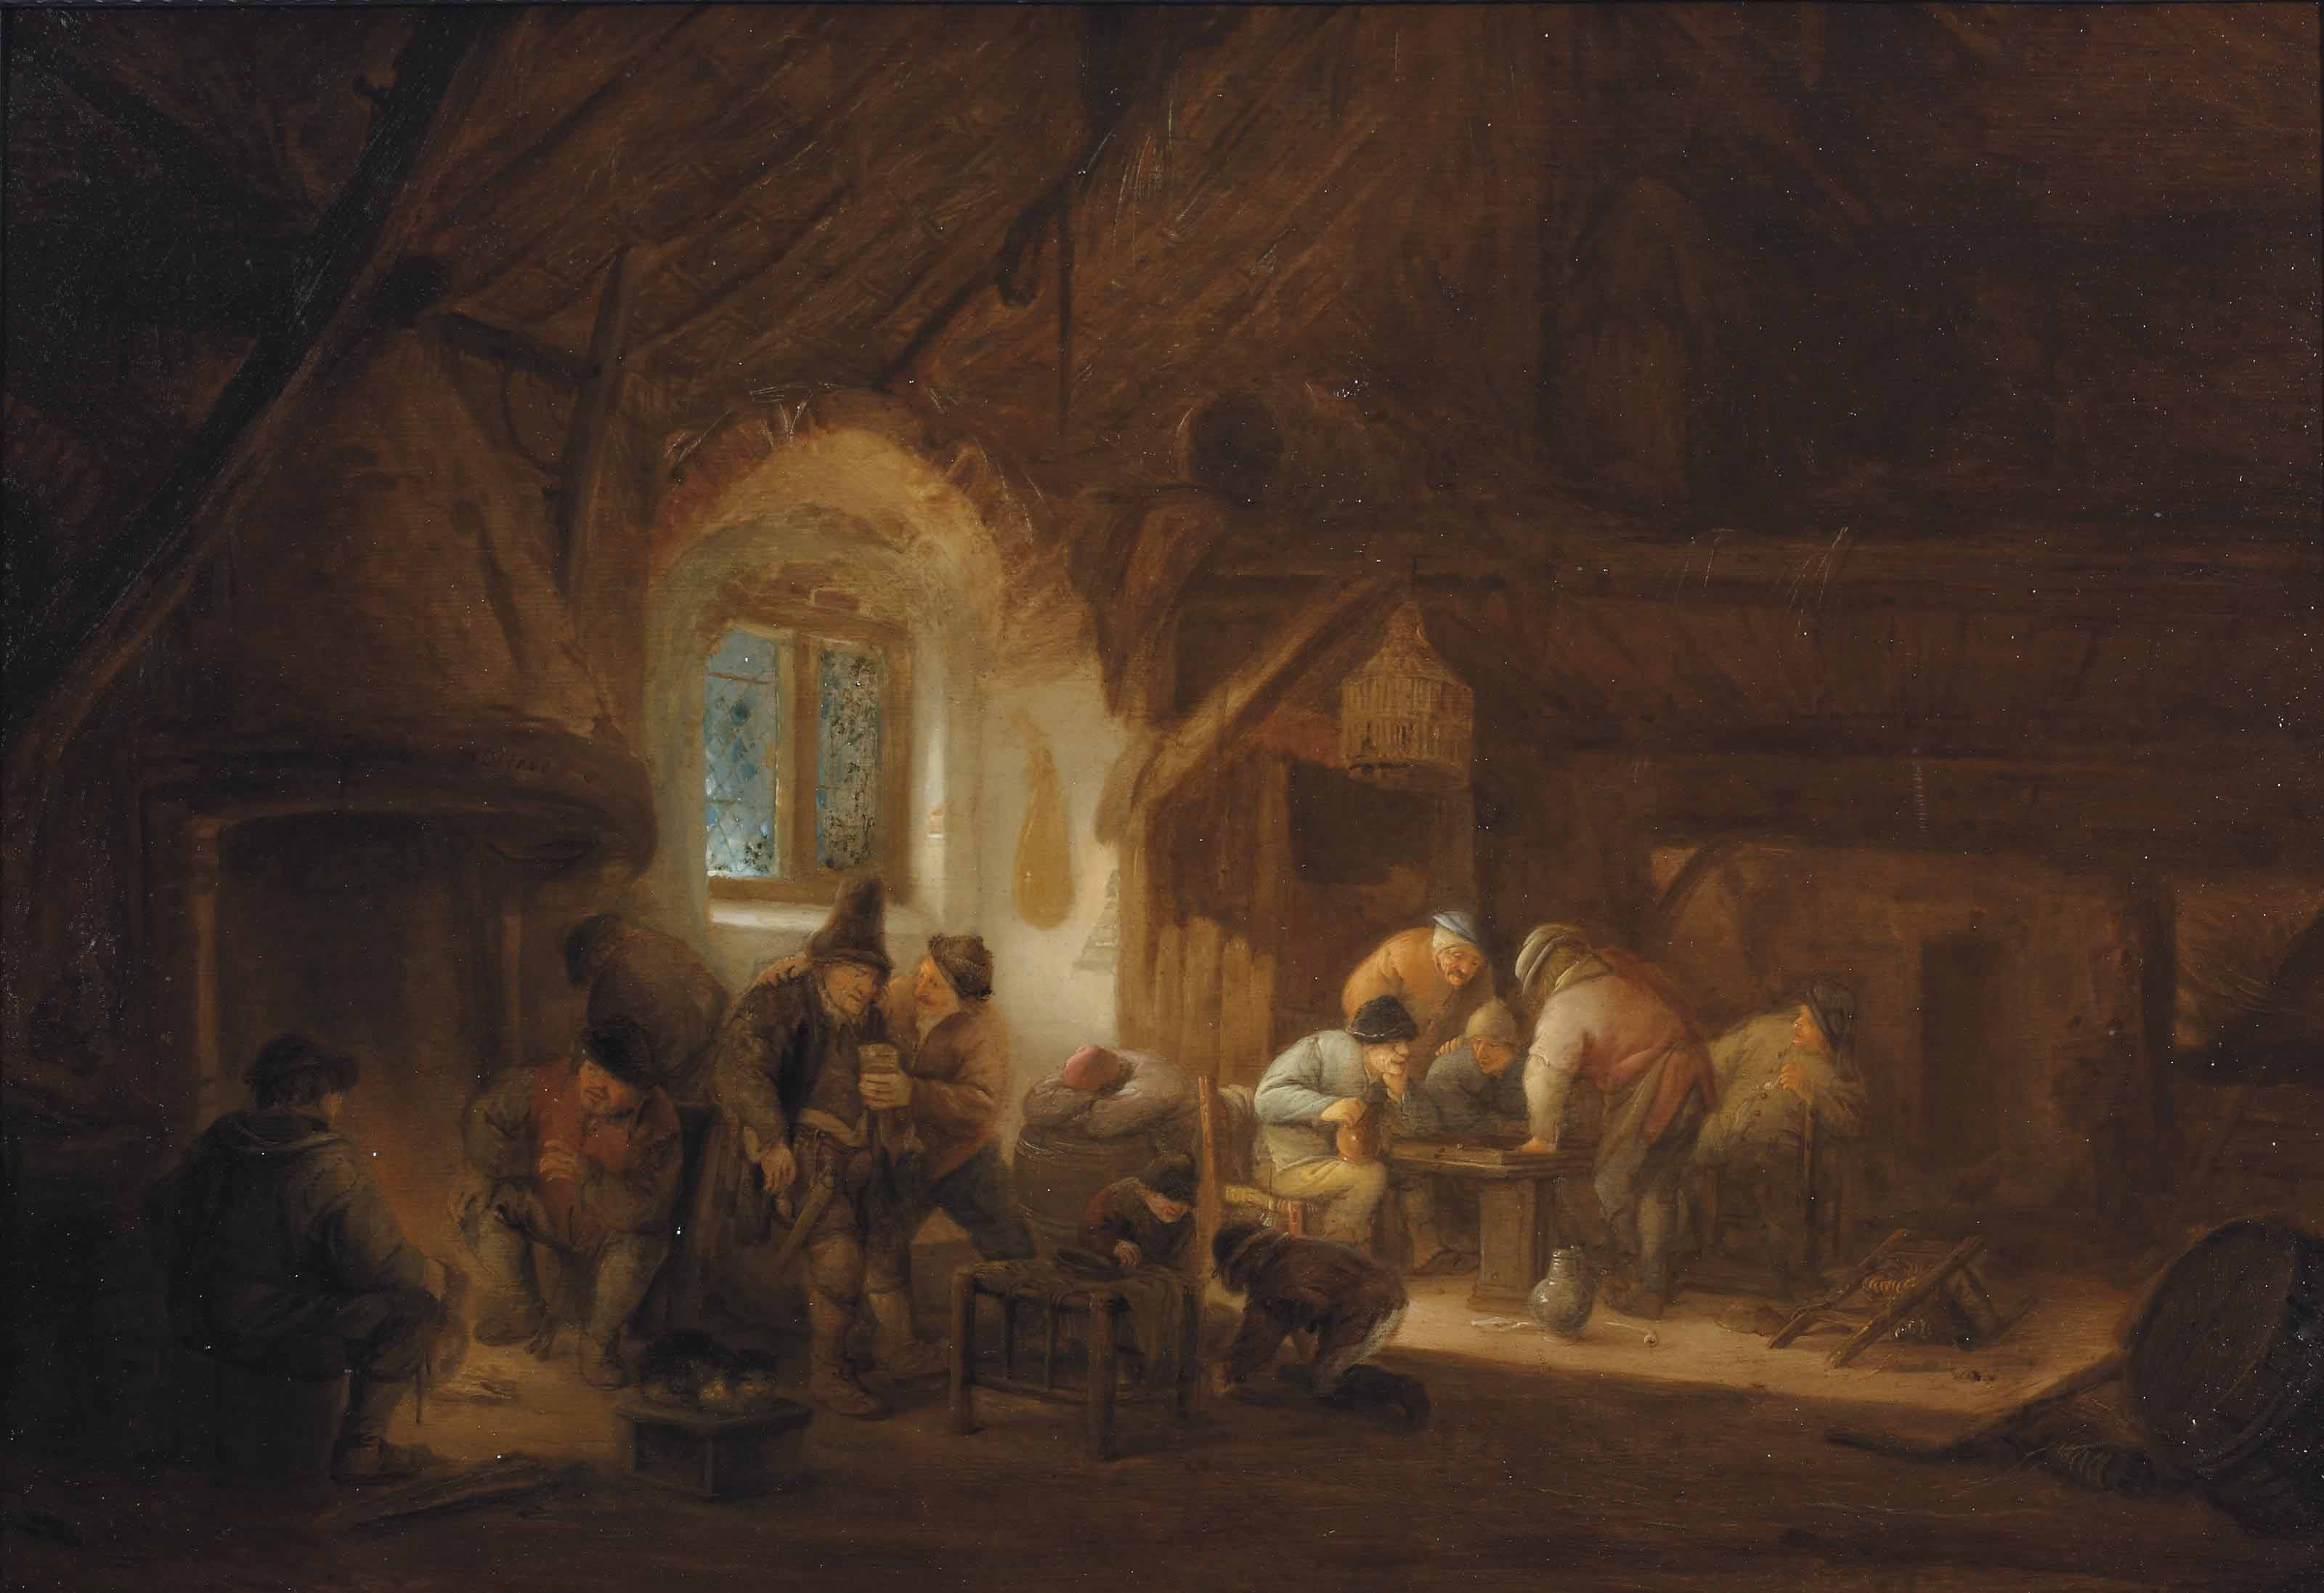 A barn interior with peasants conversing by a fire place, drinking and playing backgammon